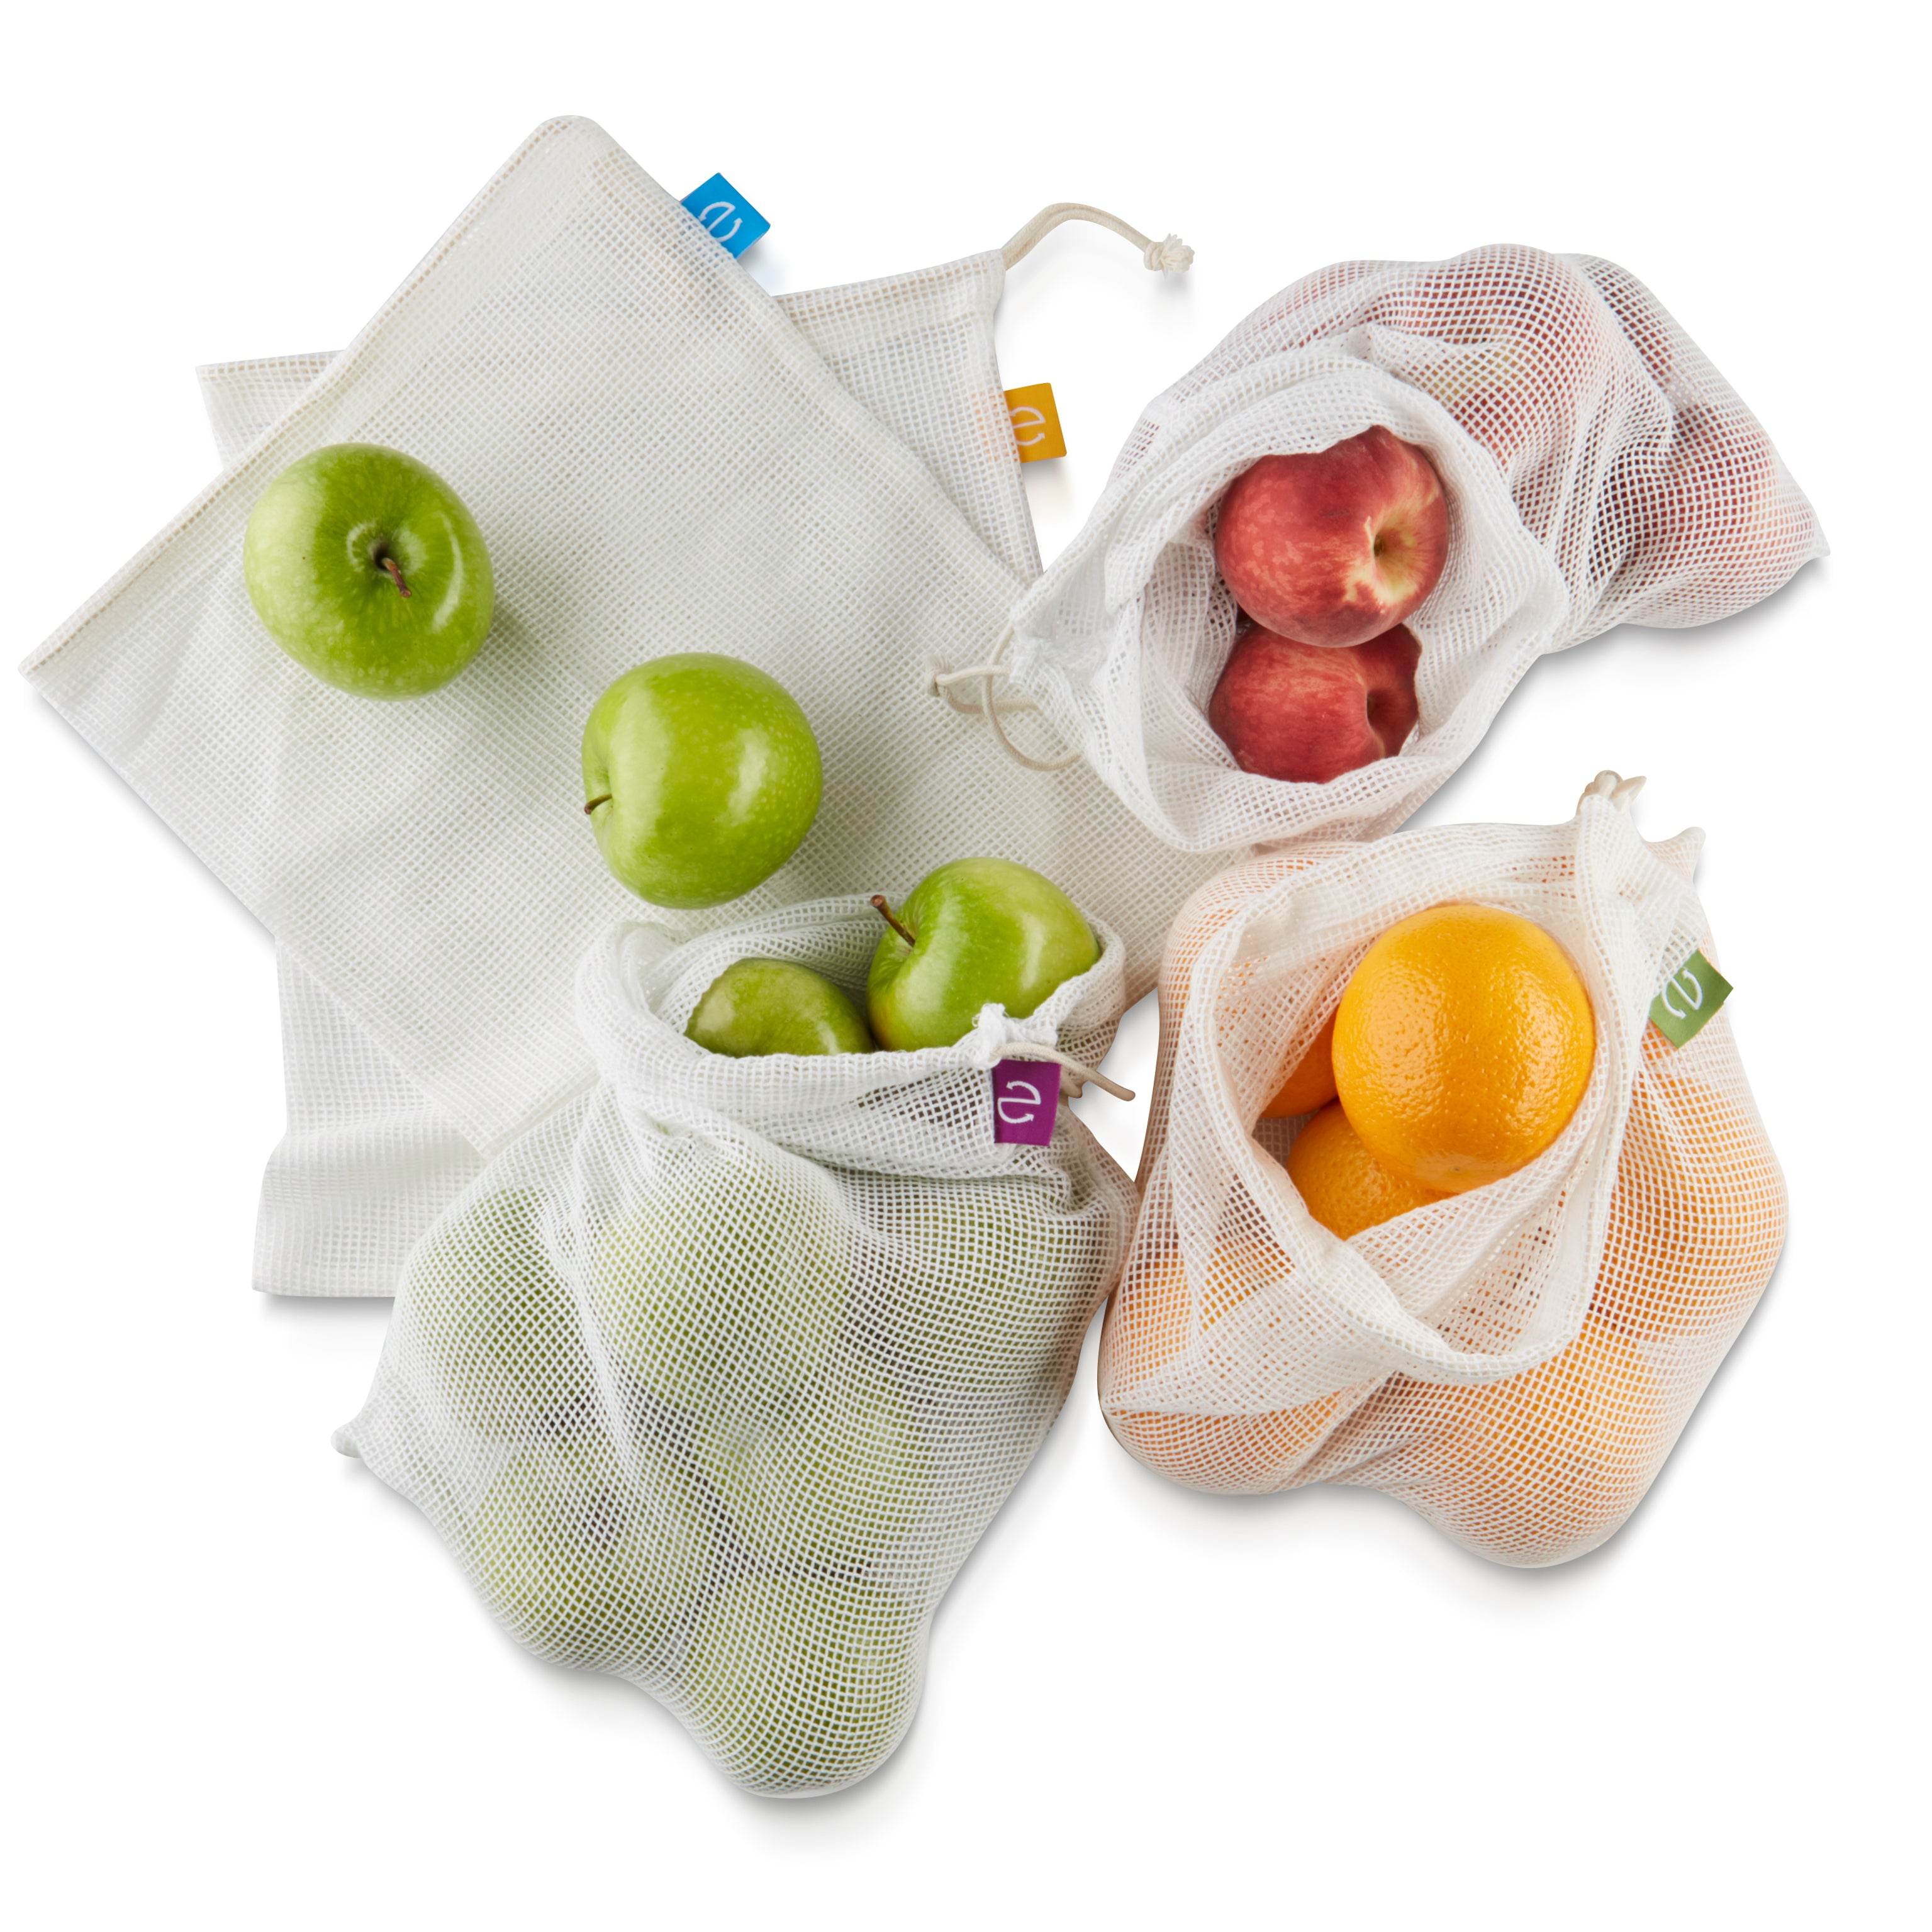 Copy of 5x Produce Bags + Honeycomb Carry Bag